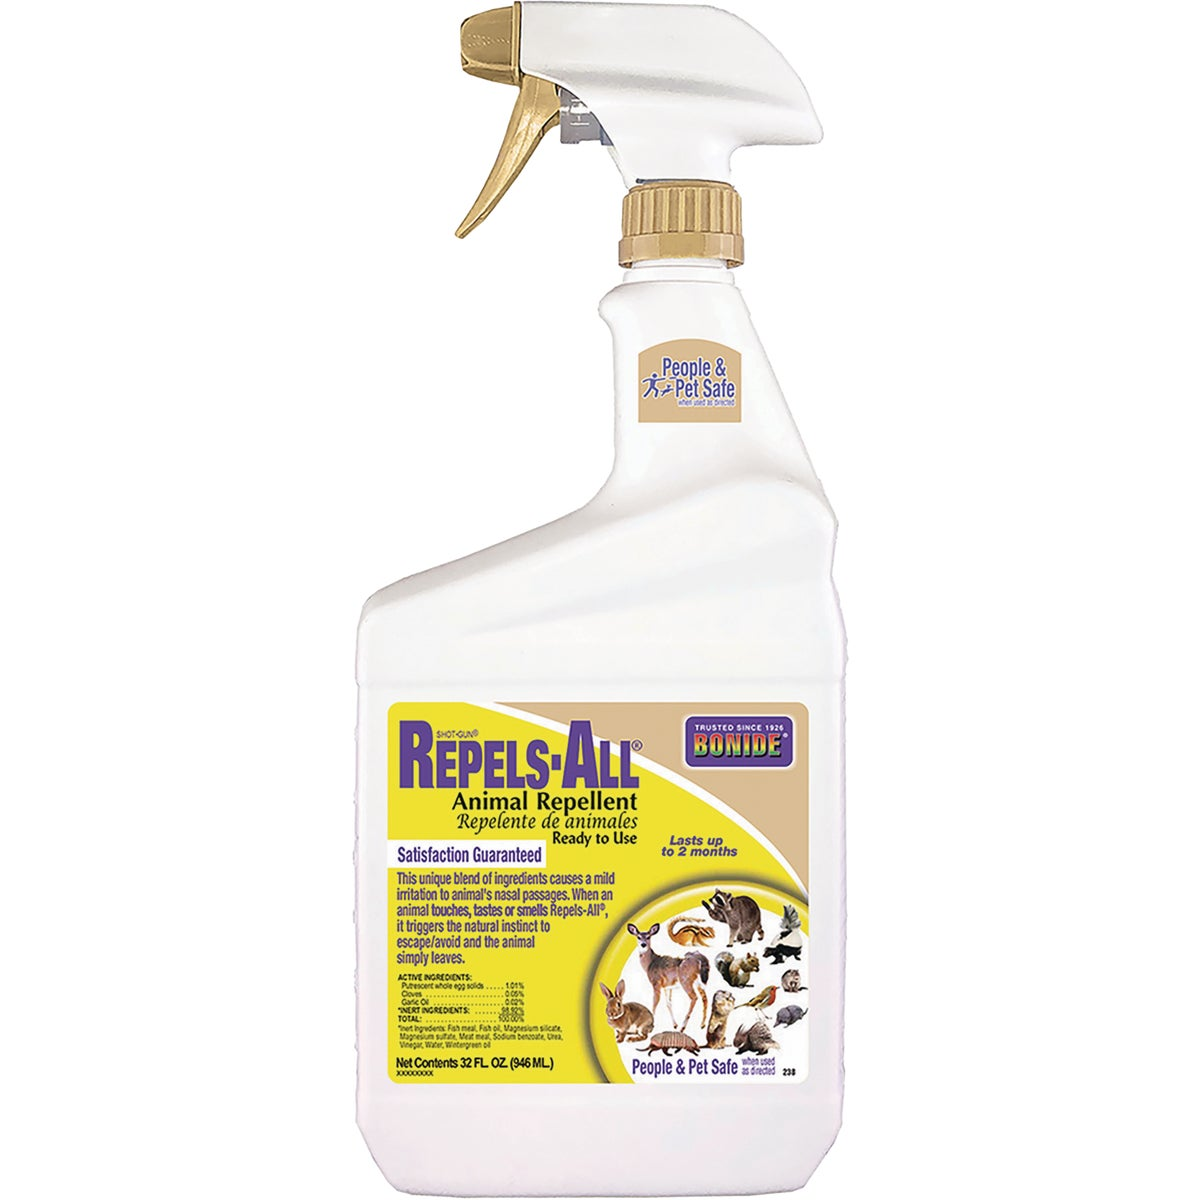 Bonide 238 1-Quart Shot-Gun Repels-All Animal Repellent Ready To Use